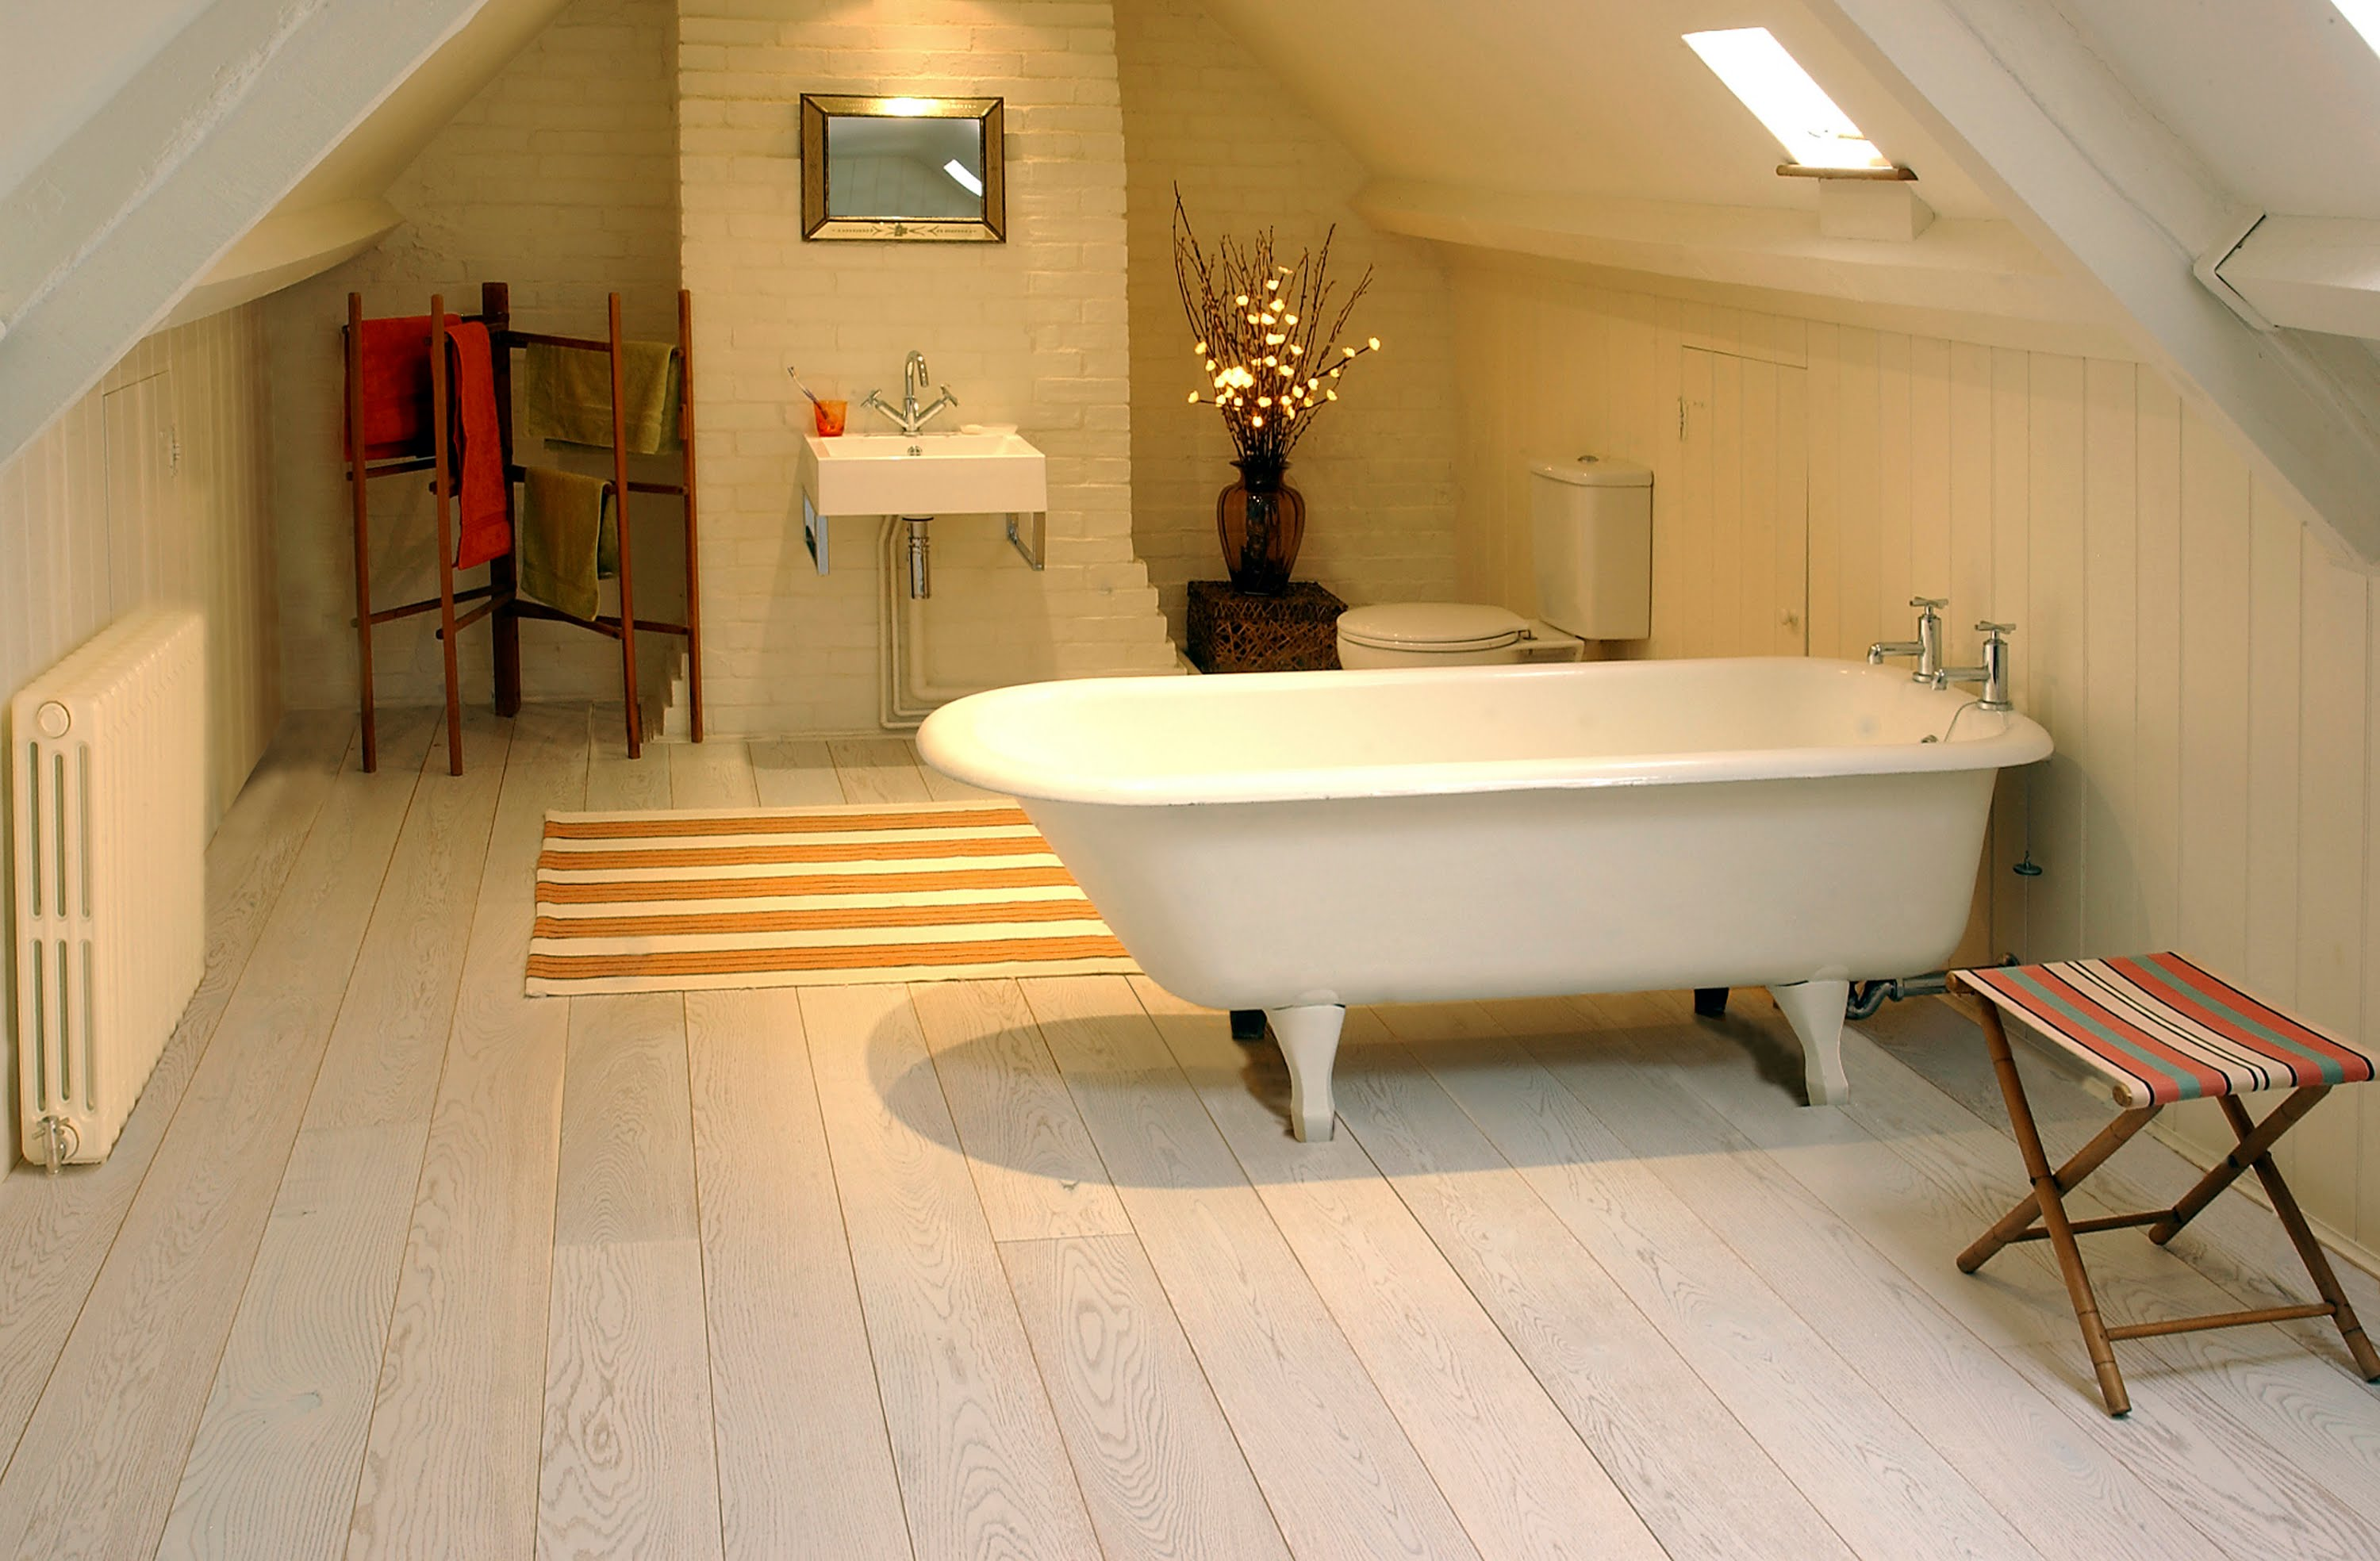 Bamboo Flooring In Bathroom